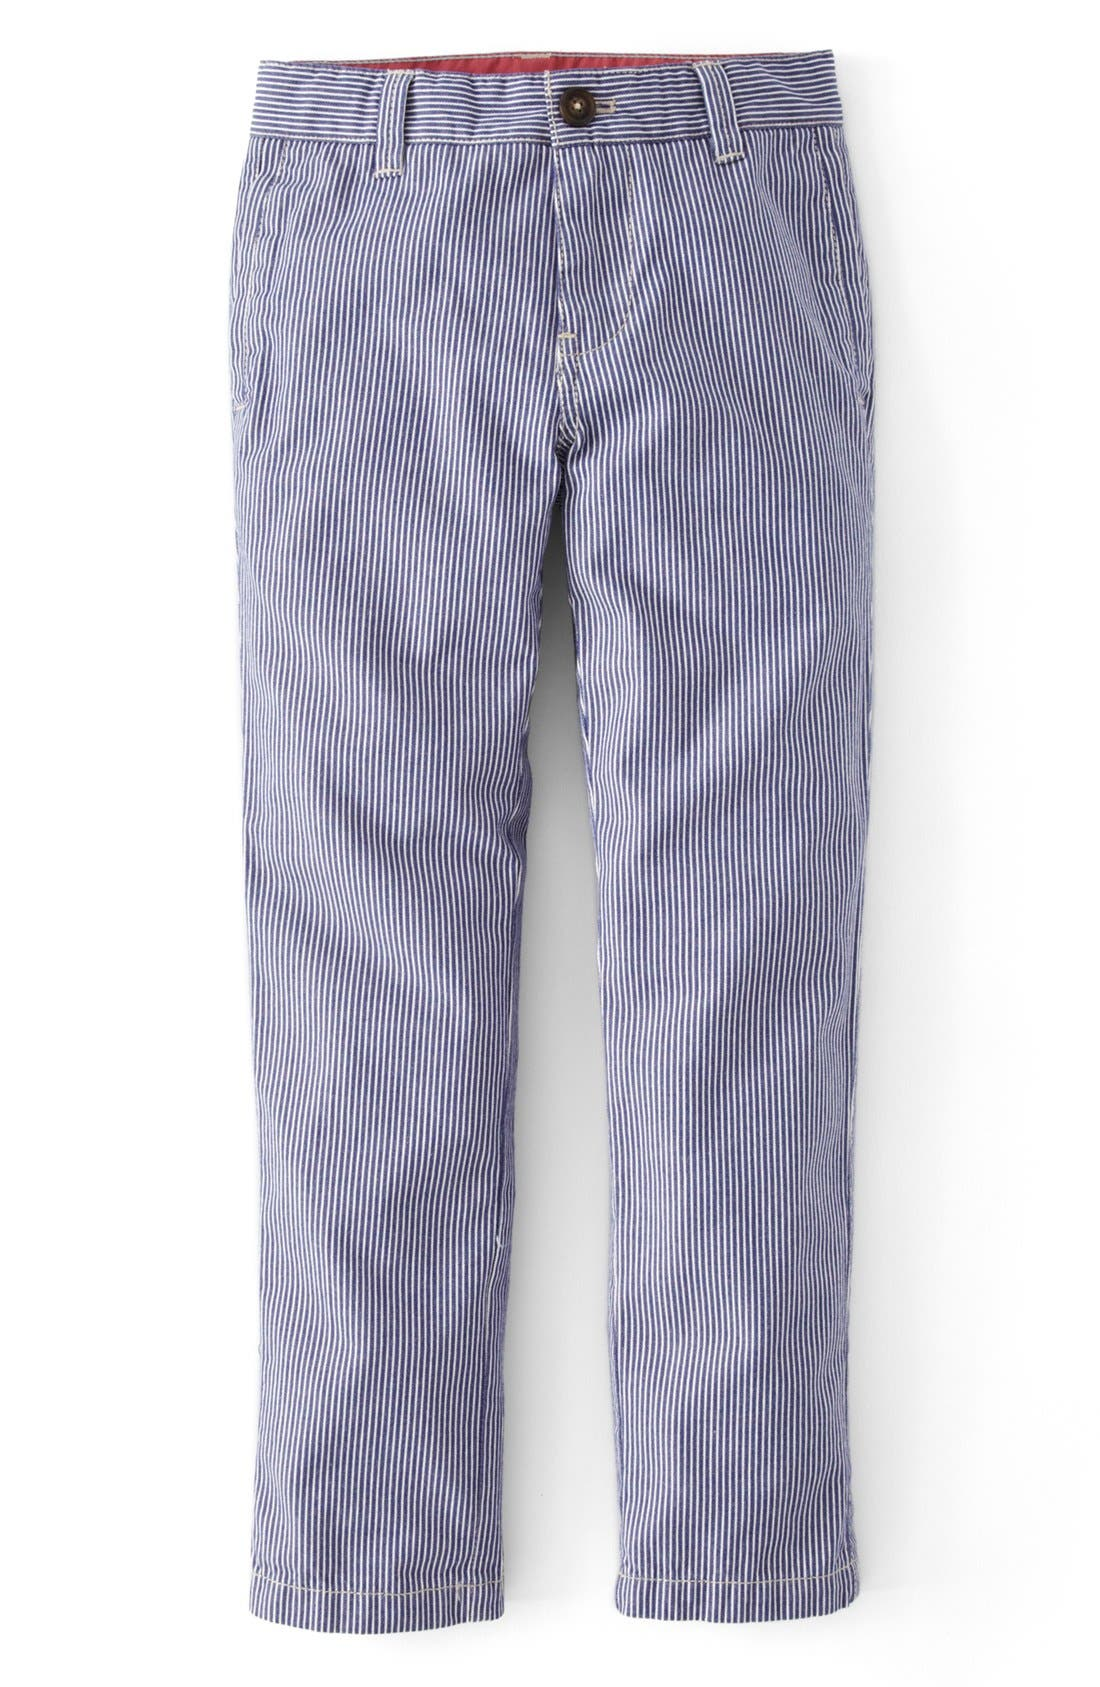 Main Image - Mini Boden Chinos (Toddler Boys, Little Boys & Big Boys)